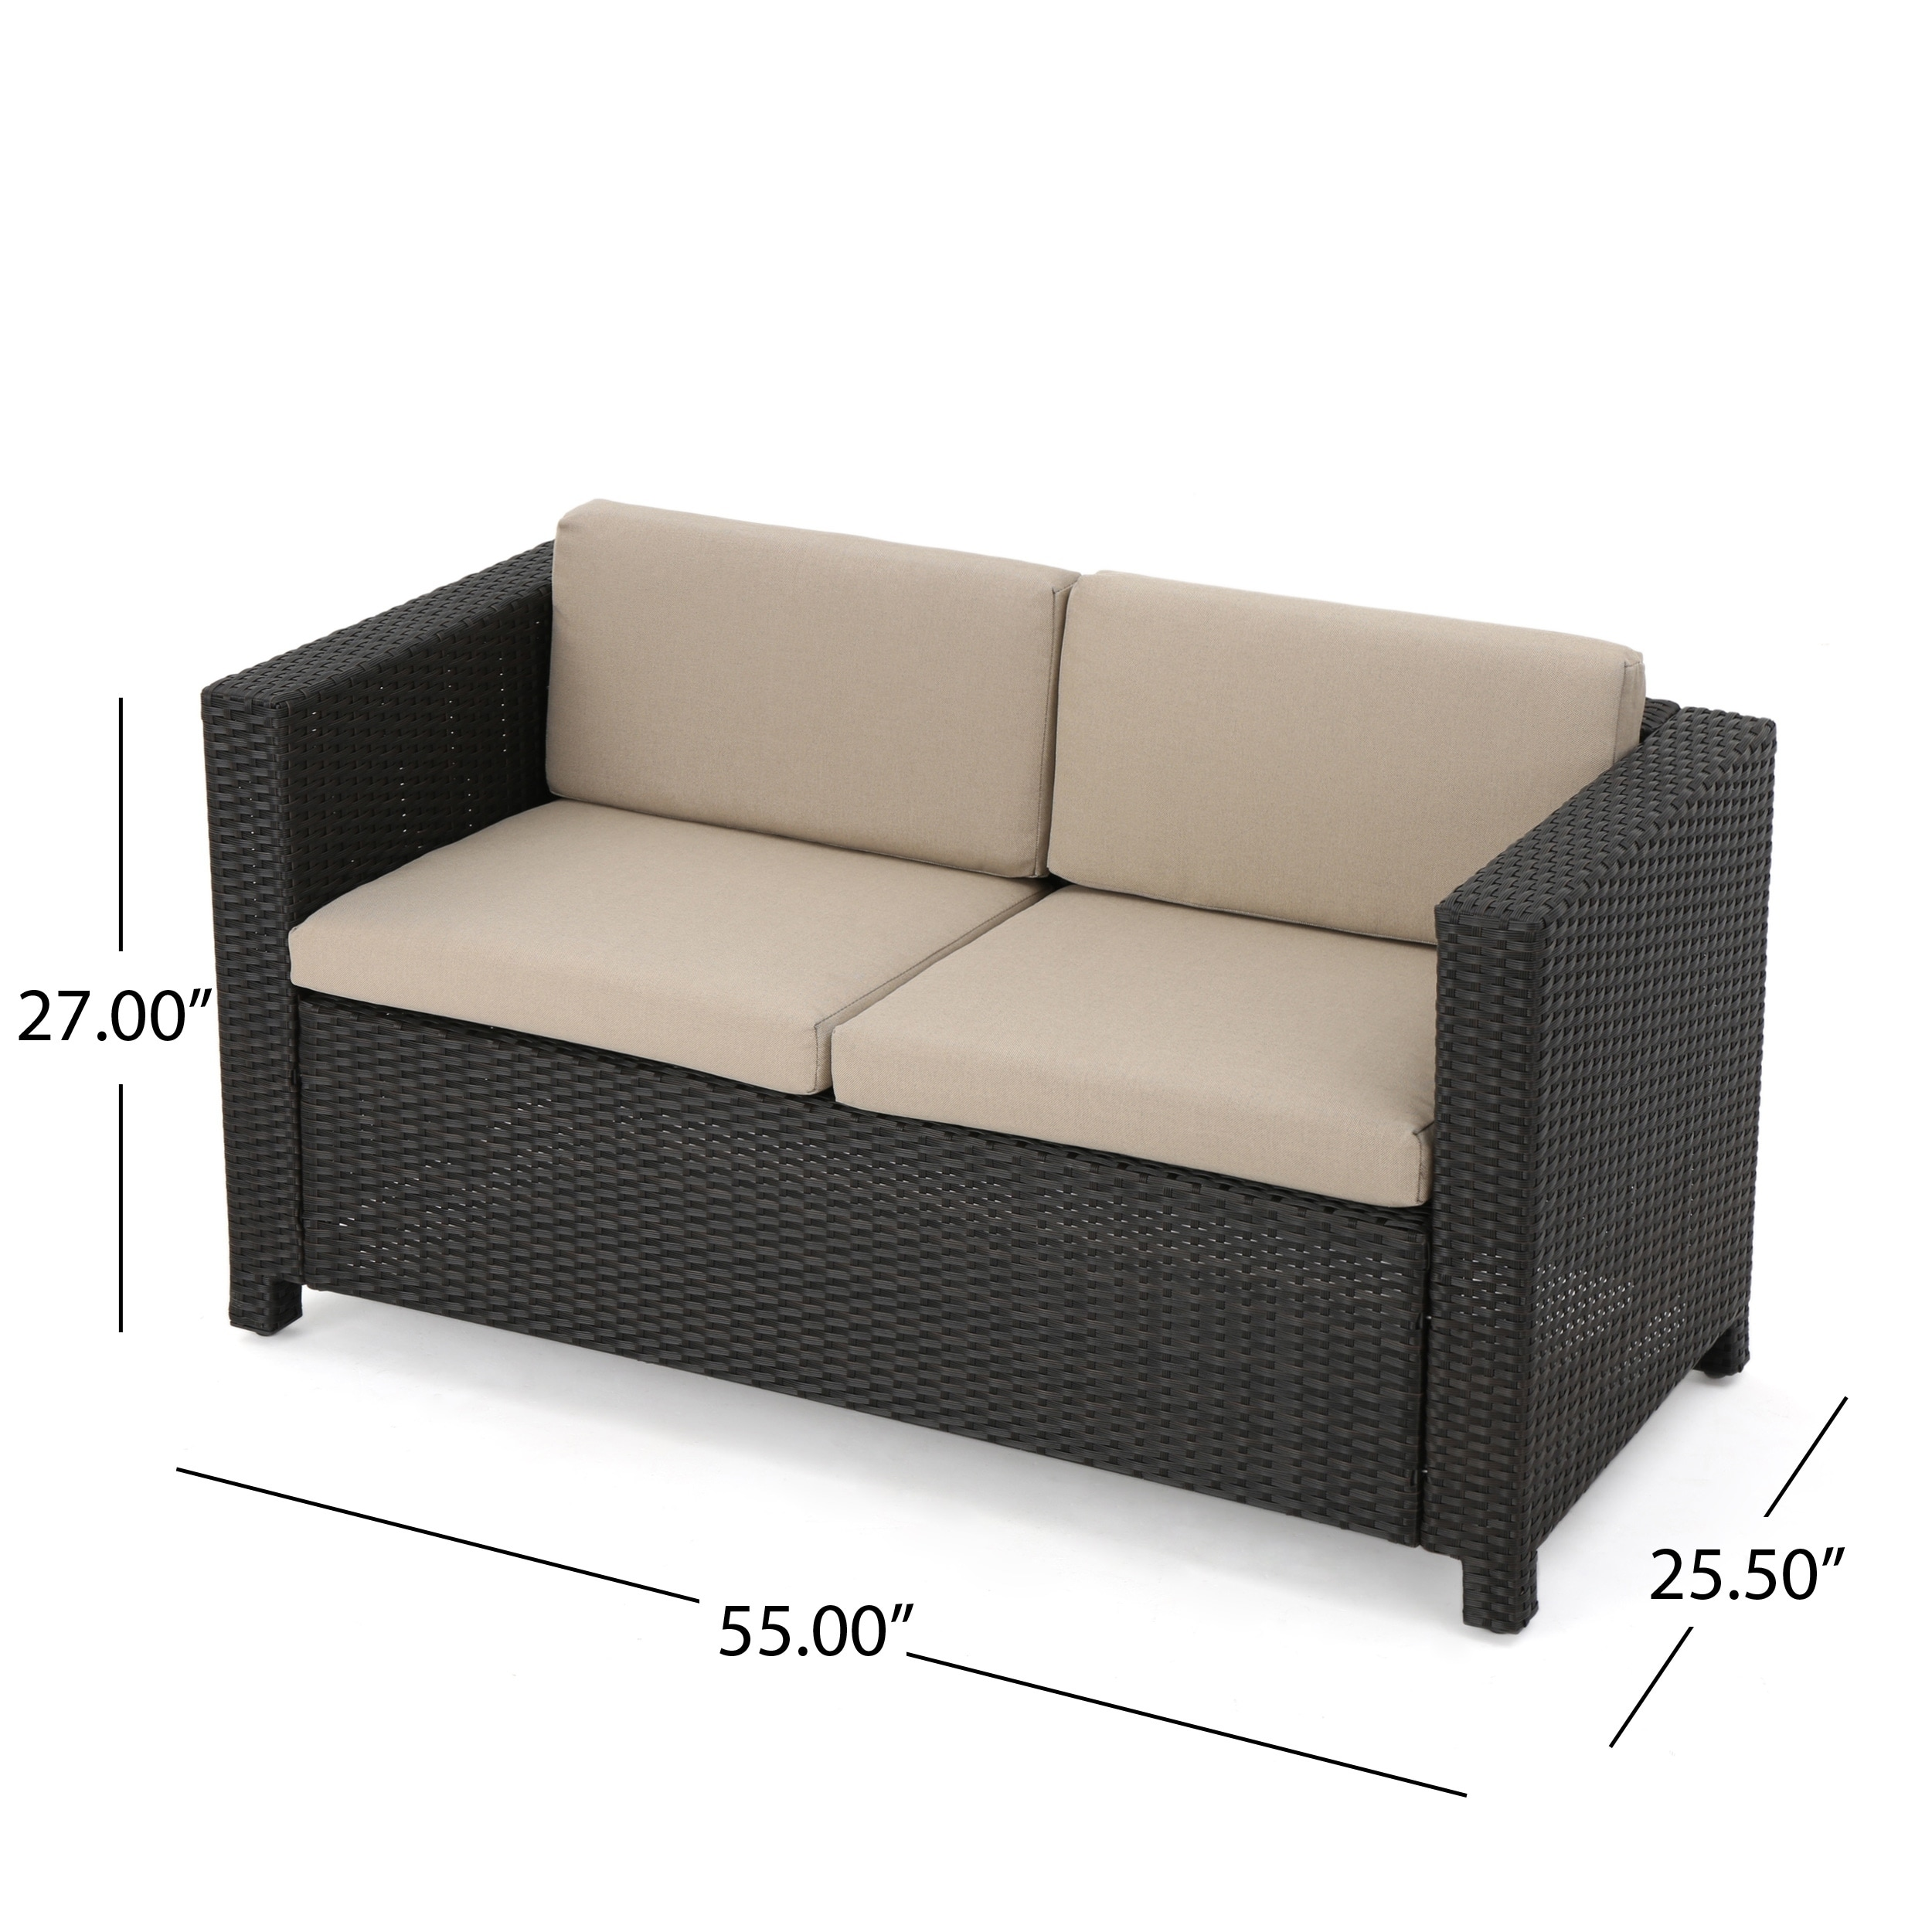 serta outdoor with at loveseat home wayfair patio cushions sofa pdx reviews laguna